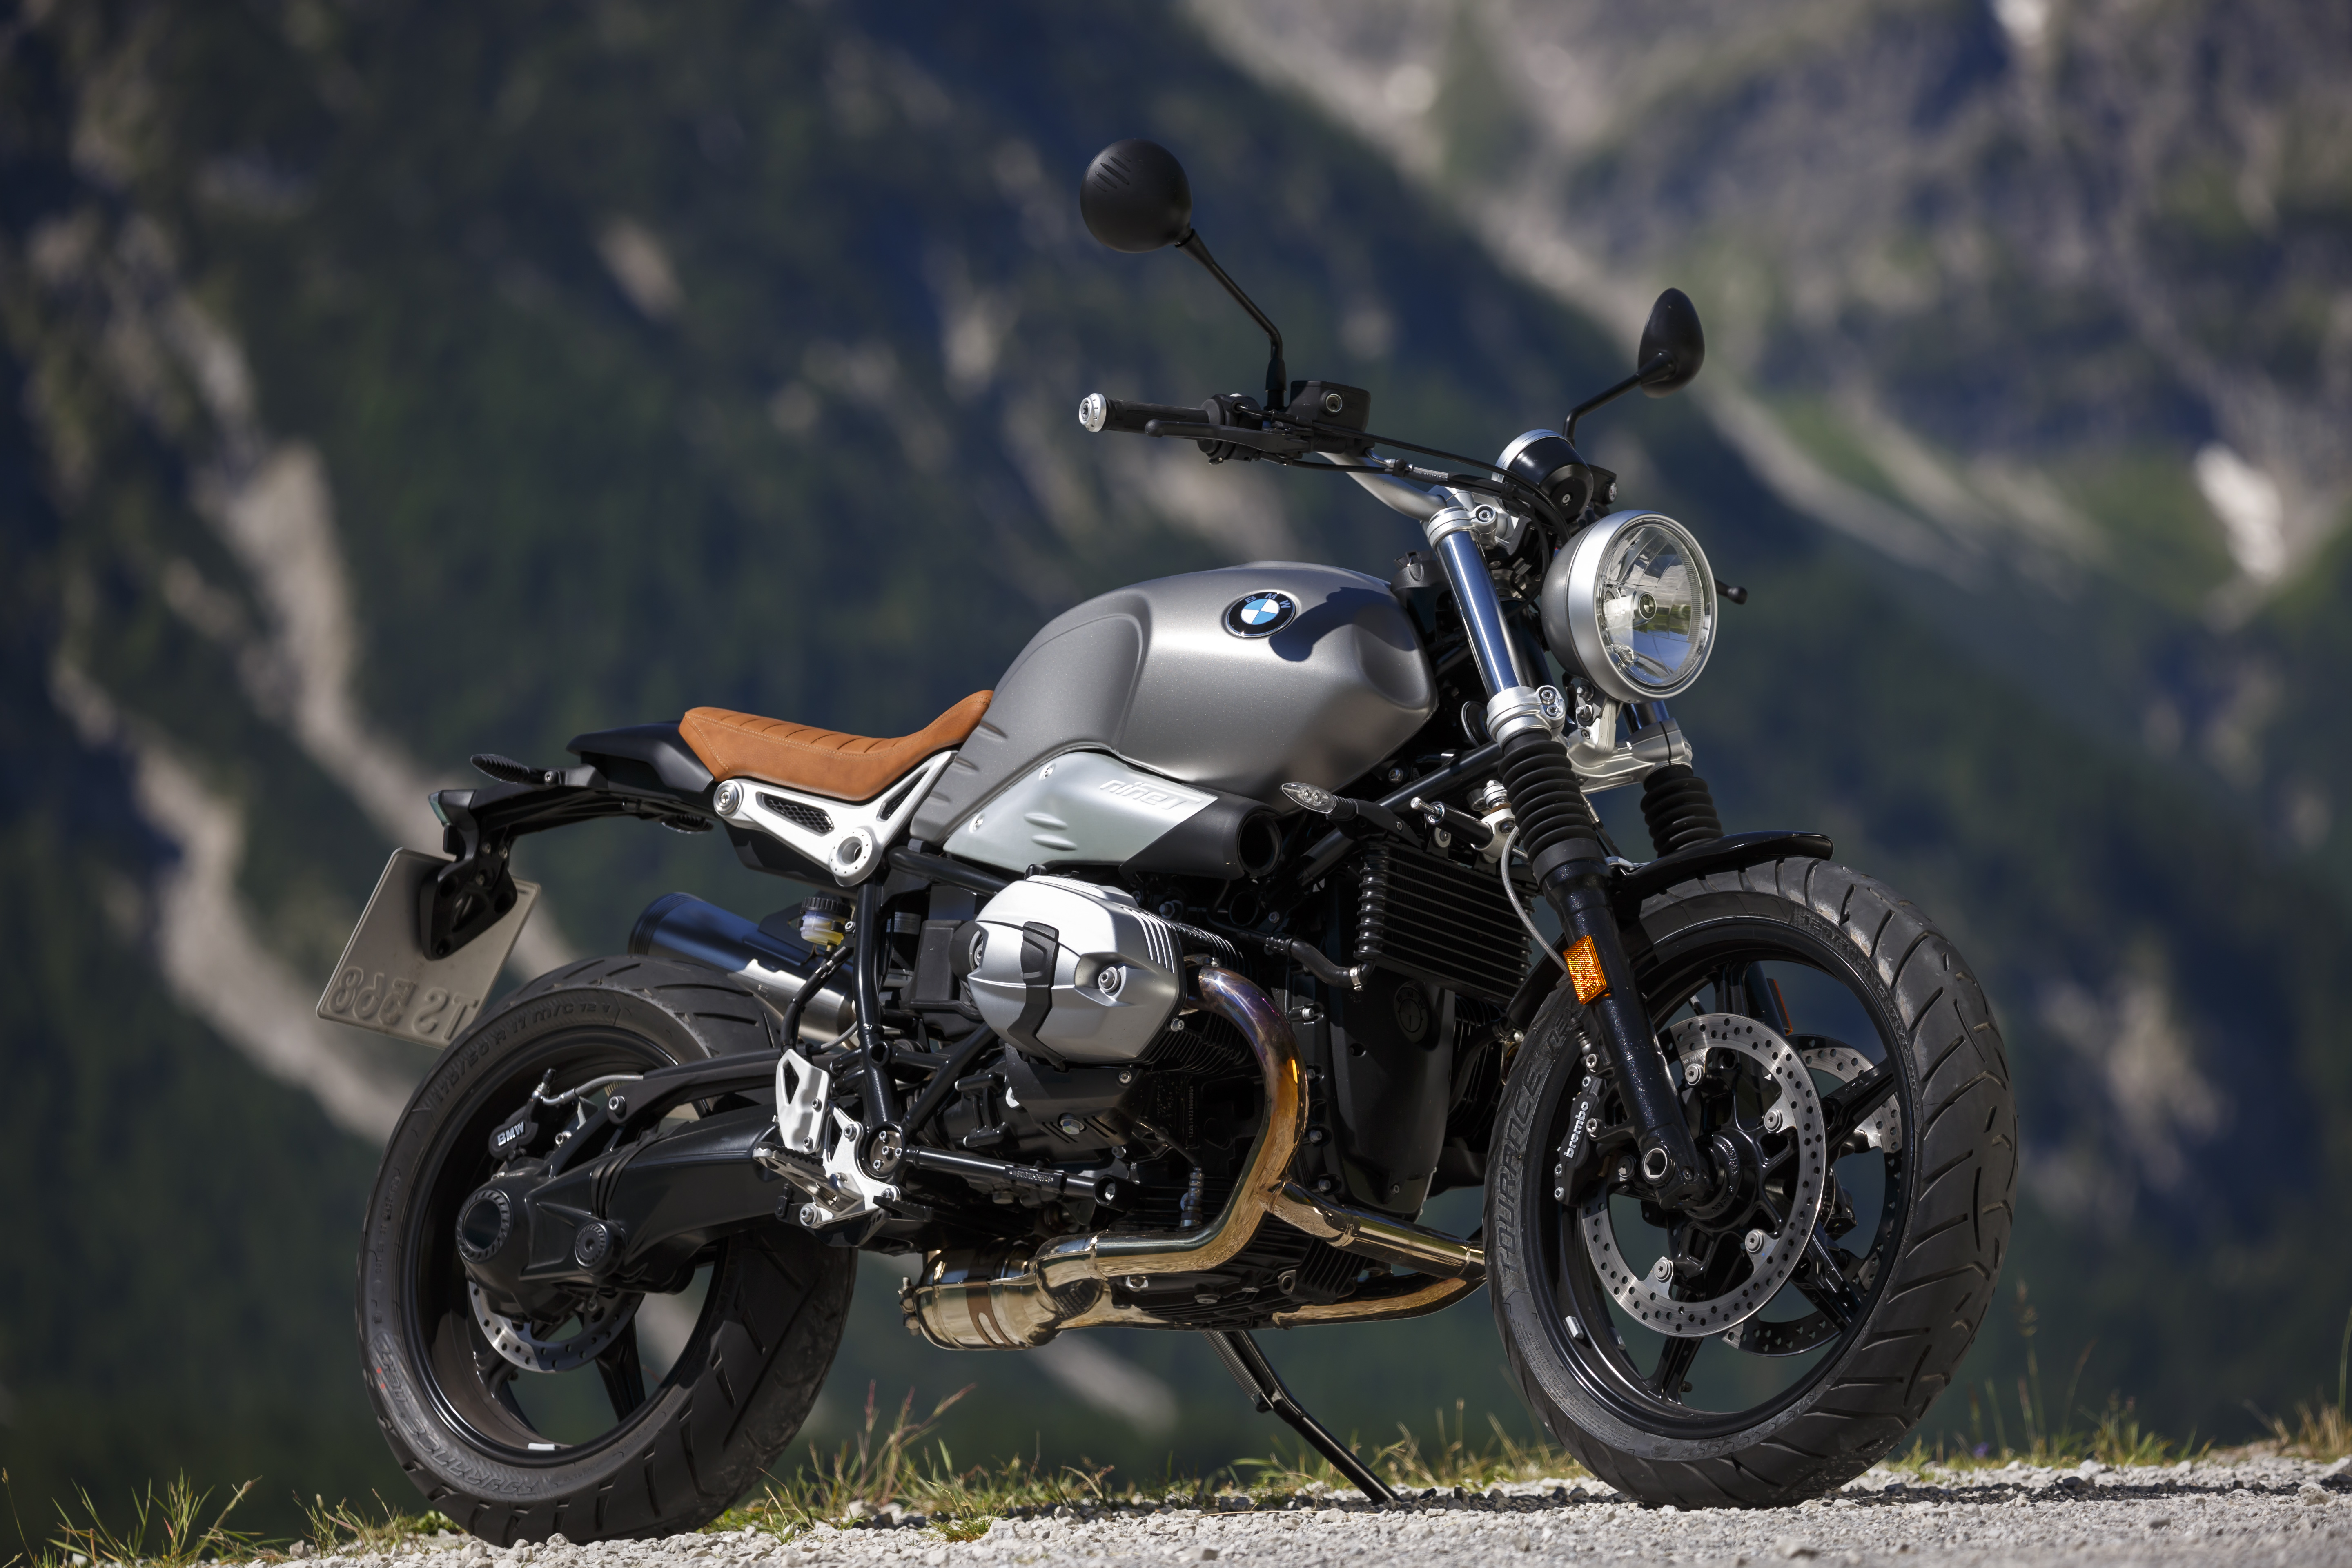 bmw r ninet scrambler launched in malaysia rm92k. Black Bedroom Furniture Sets. Home Design Ideas